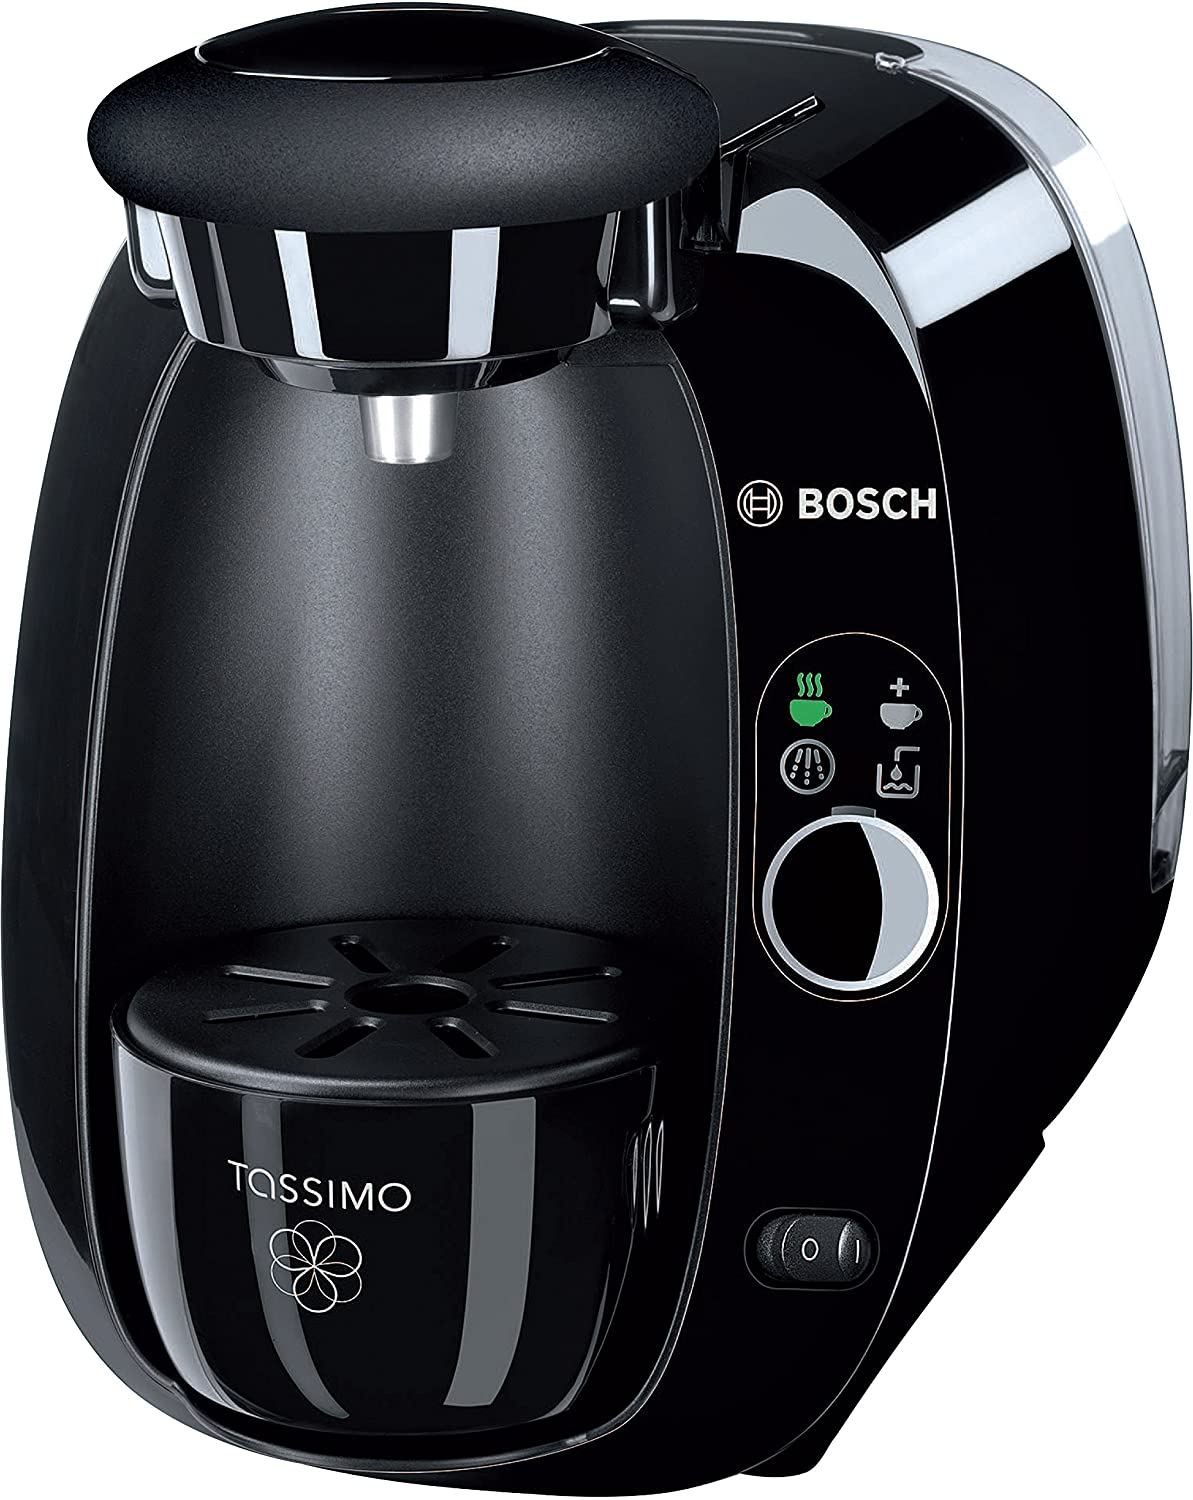 bosch tassimo t20 amia hot beverage coffee espresso maker. Black Bedroom Furniture Sets. Home Design Ideas